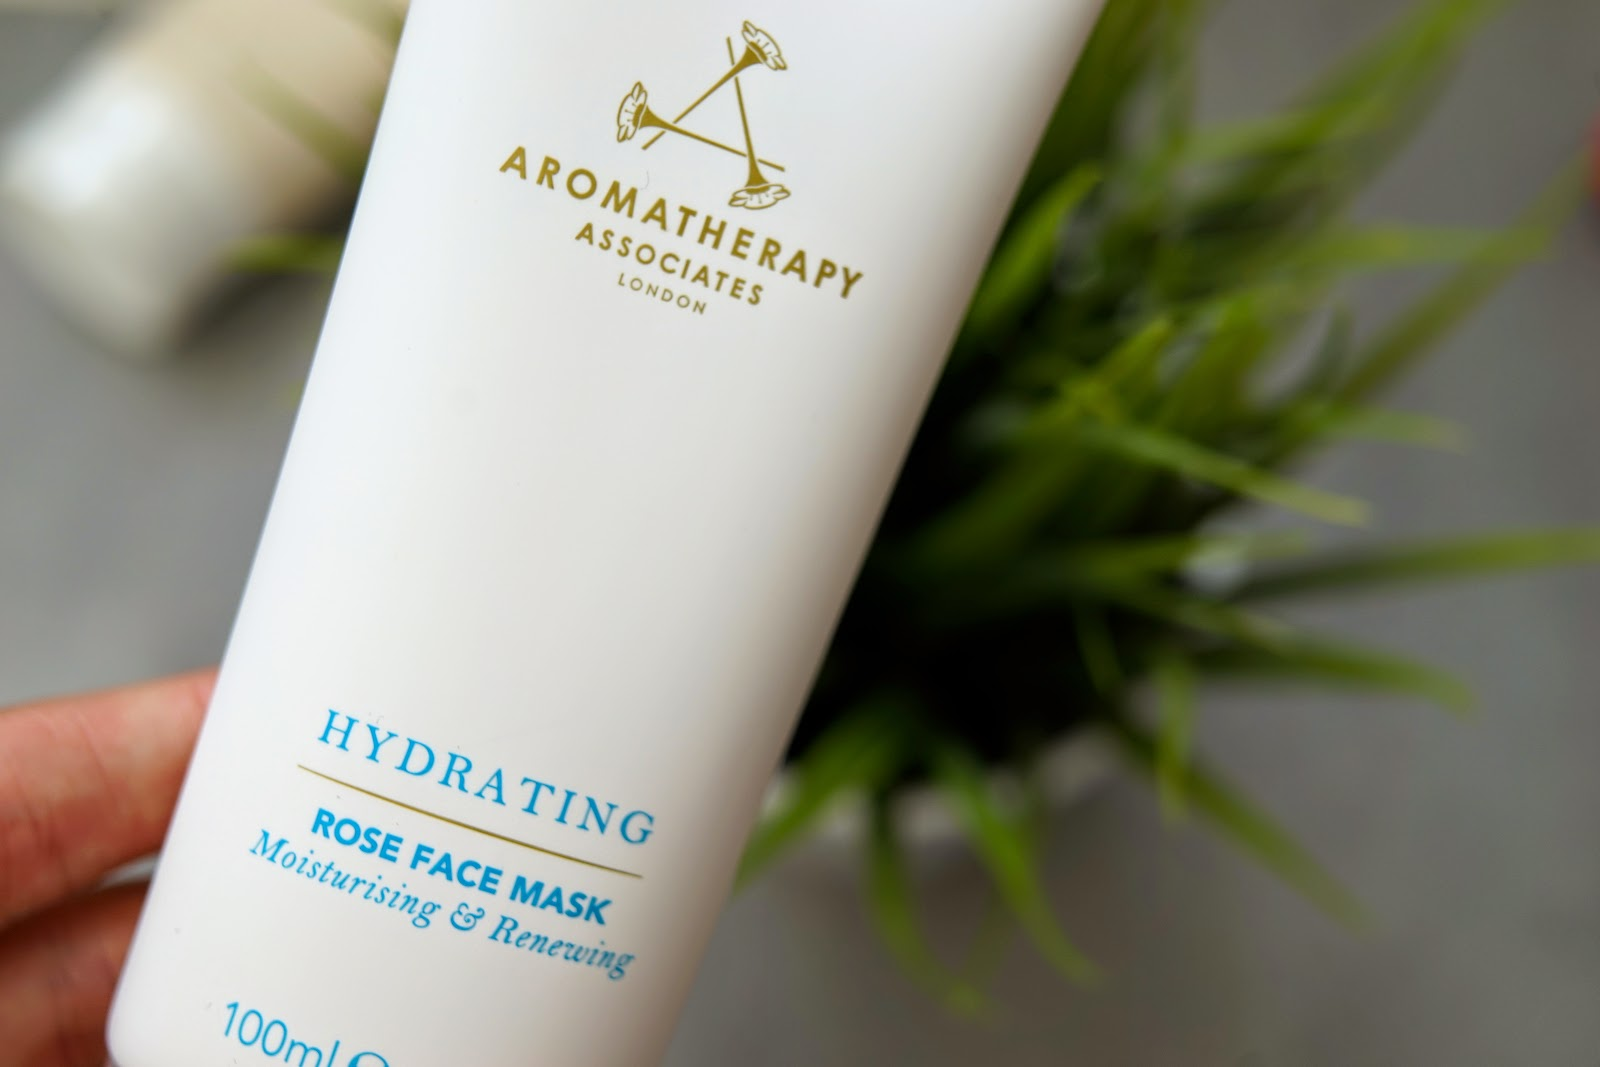 Aromatherapy Associates Hydrating Rose Face Mask